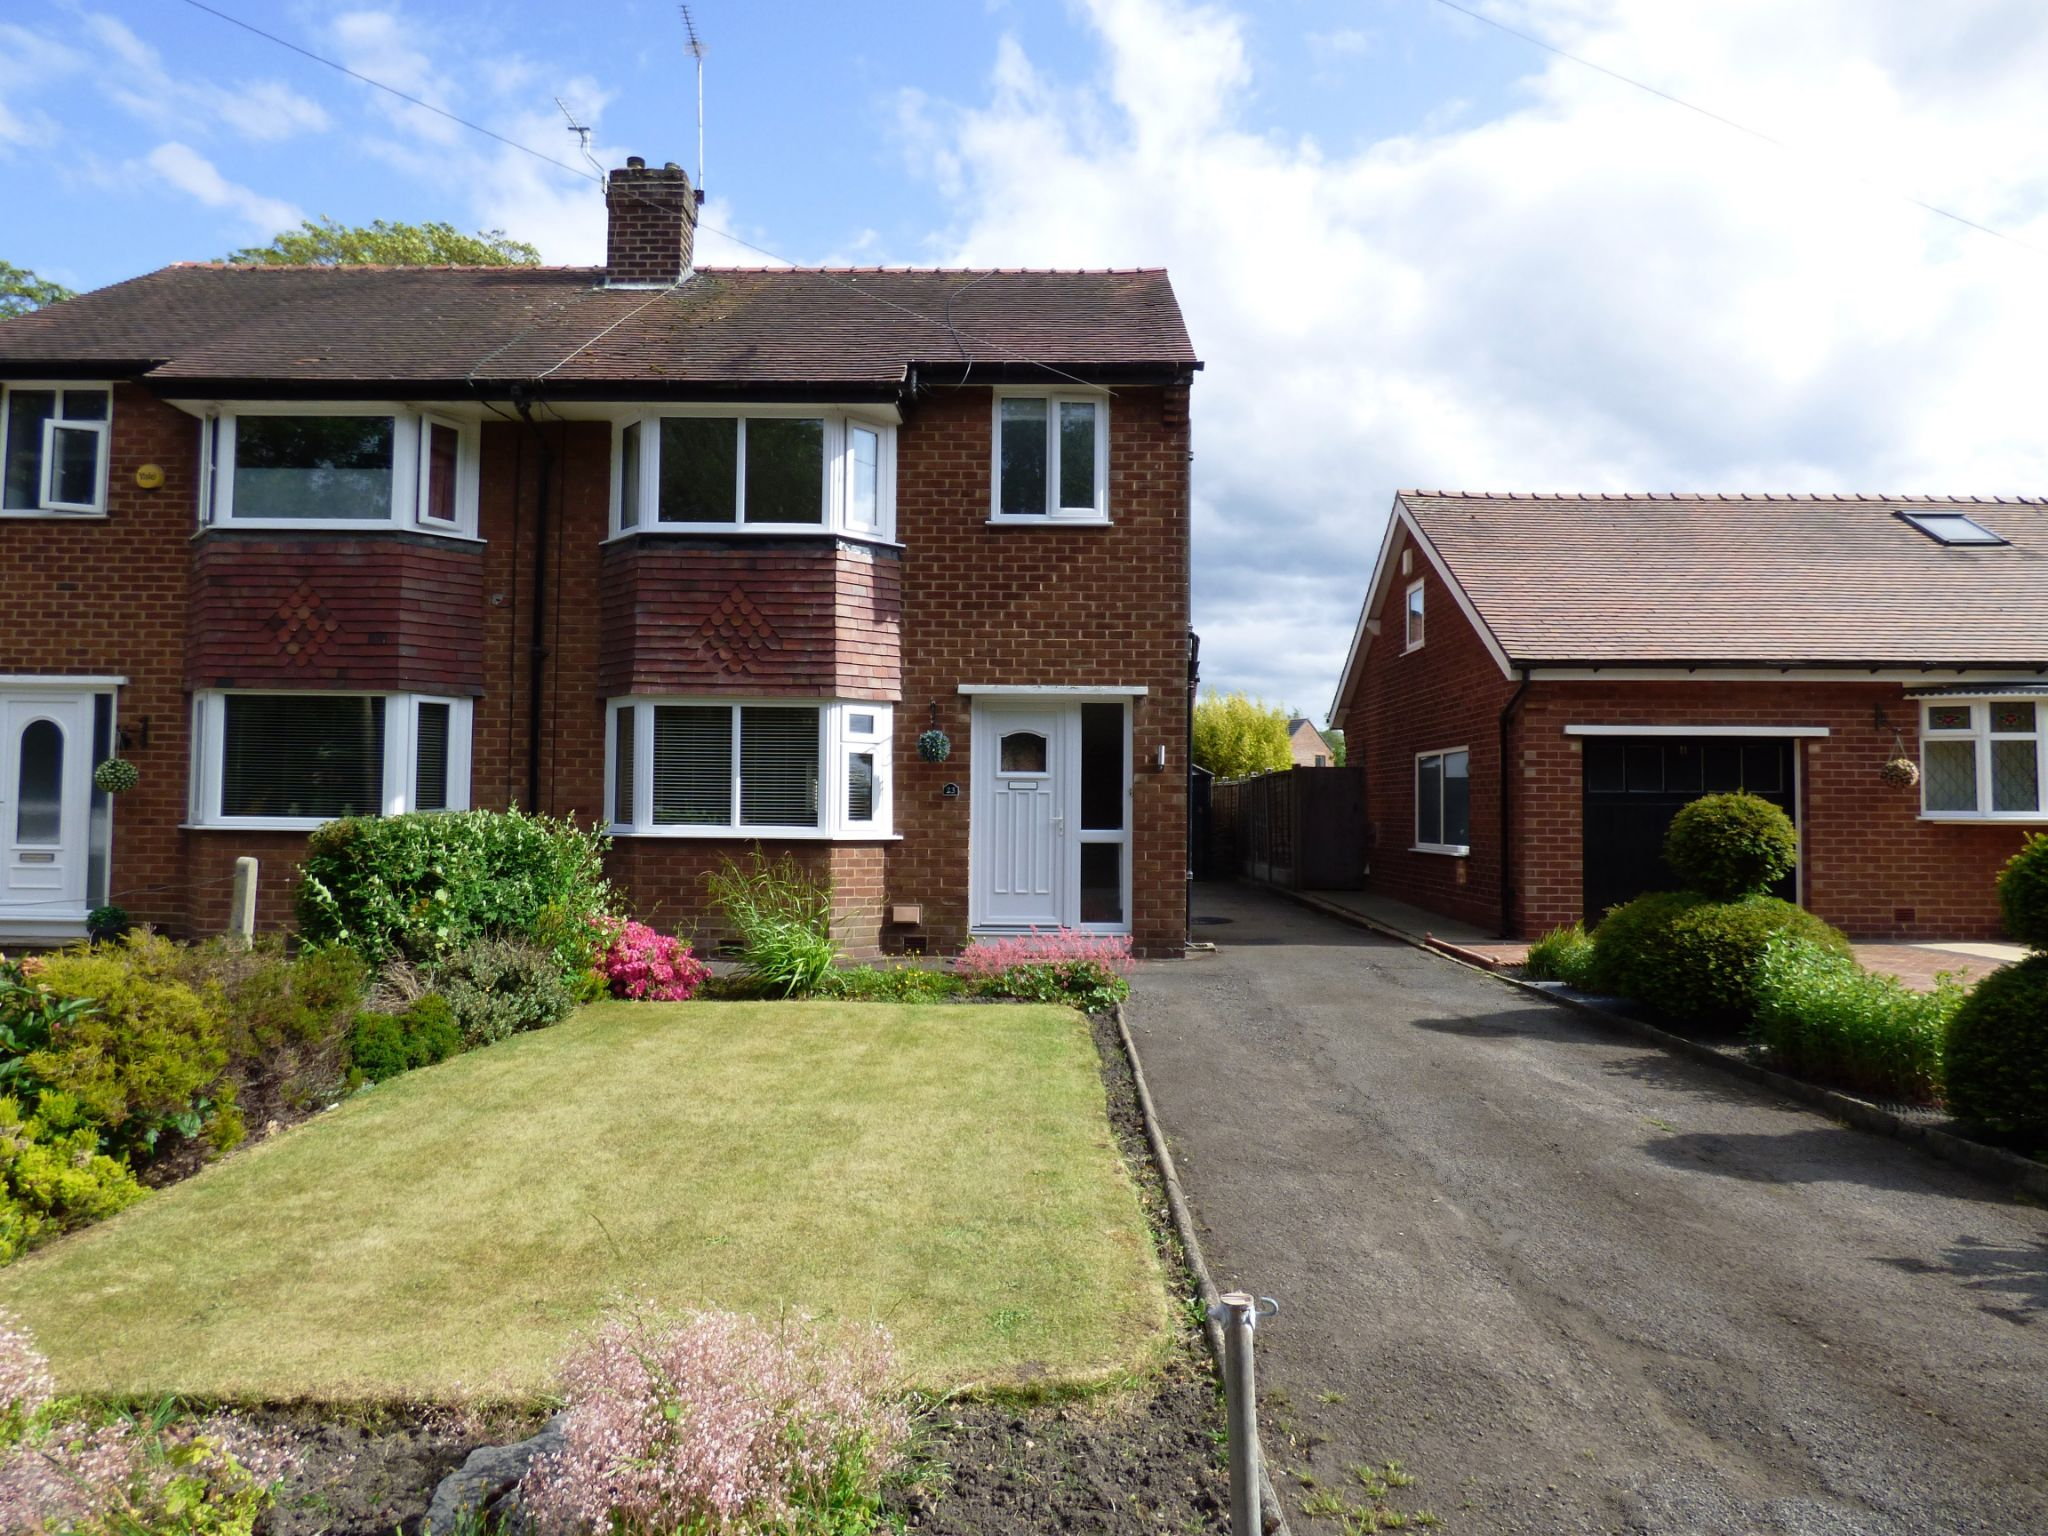 3 Bedroom Semi-detached House For Sale - Photograph 1